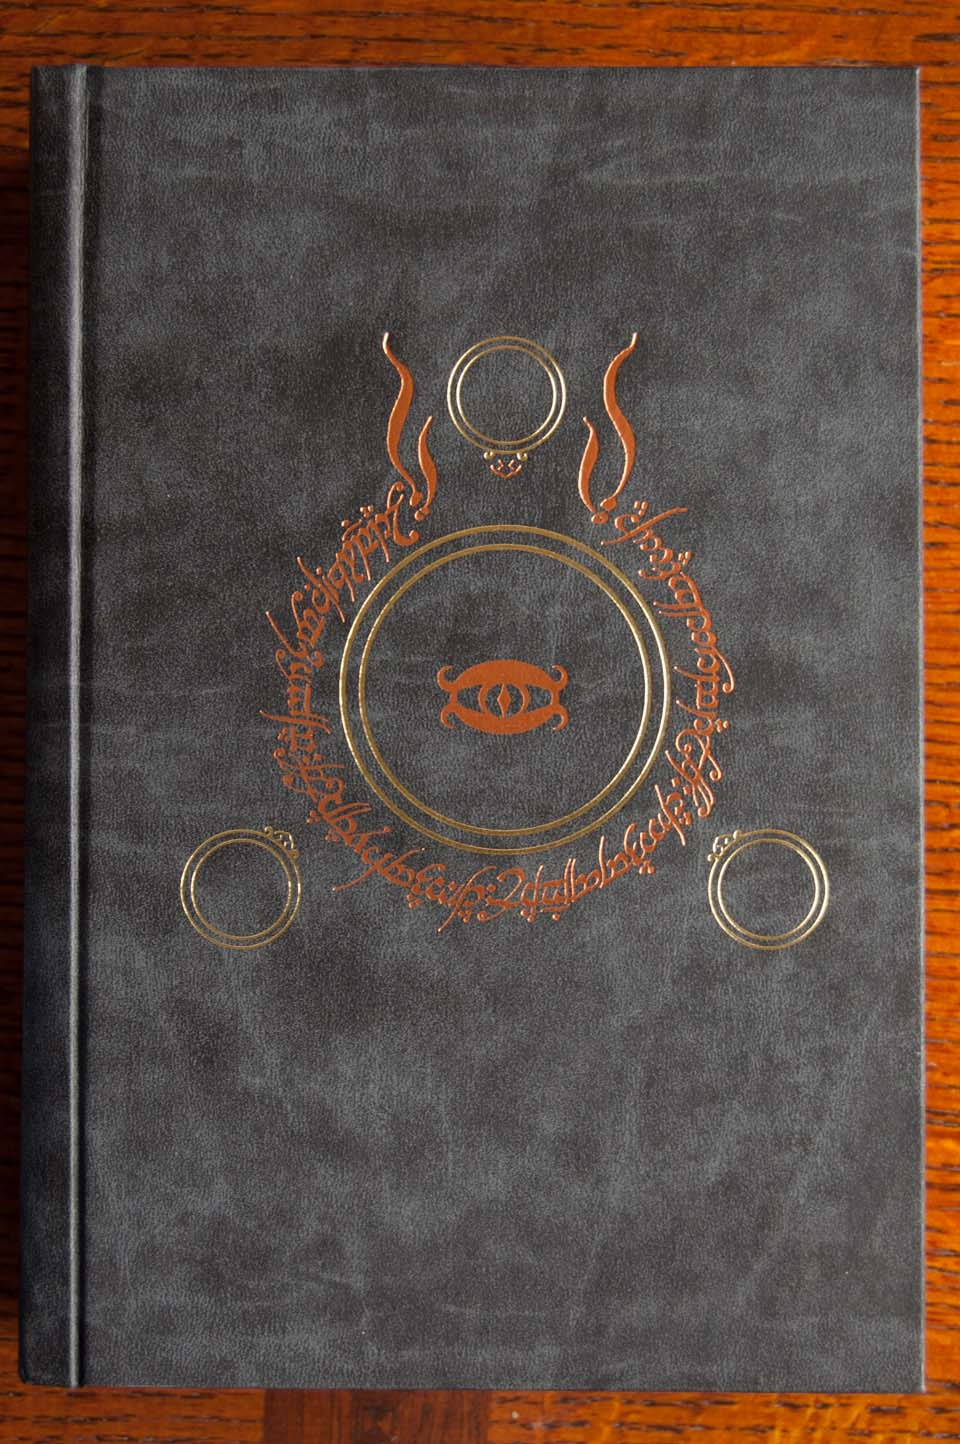 The Lord of the Rings: 50th Anniversary Edition — solitonic